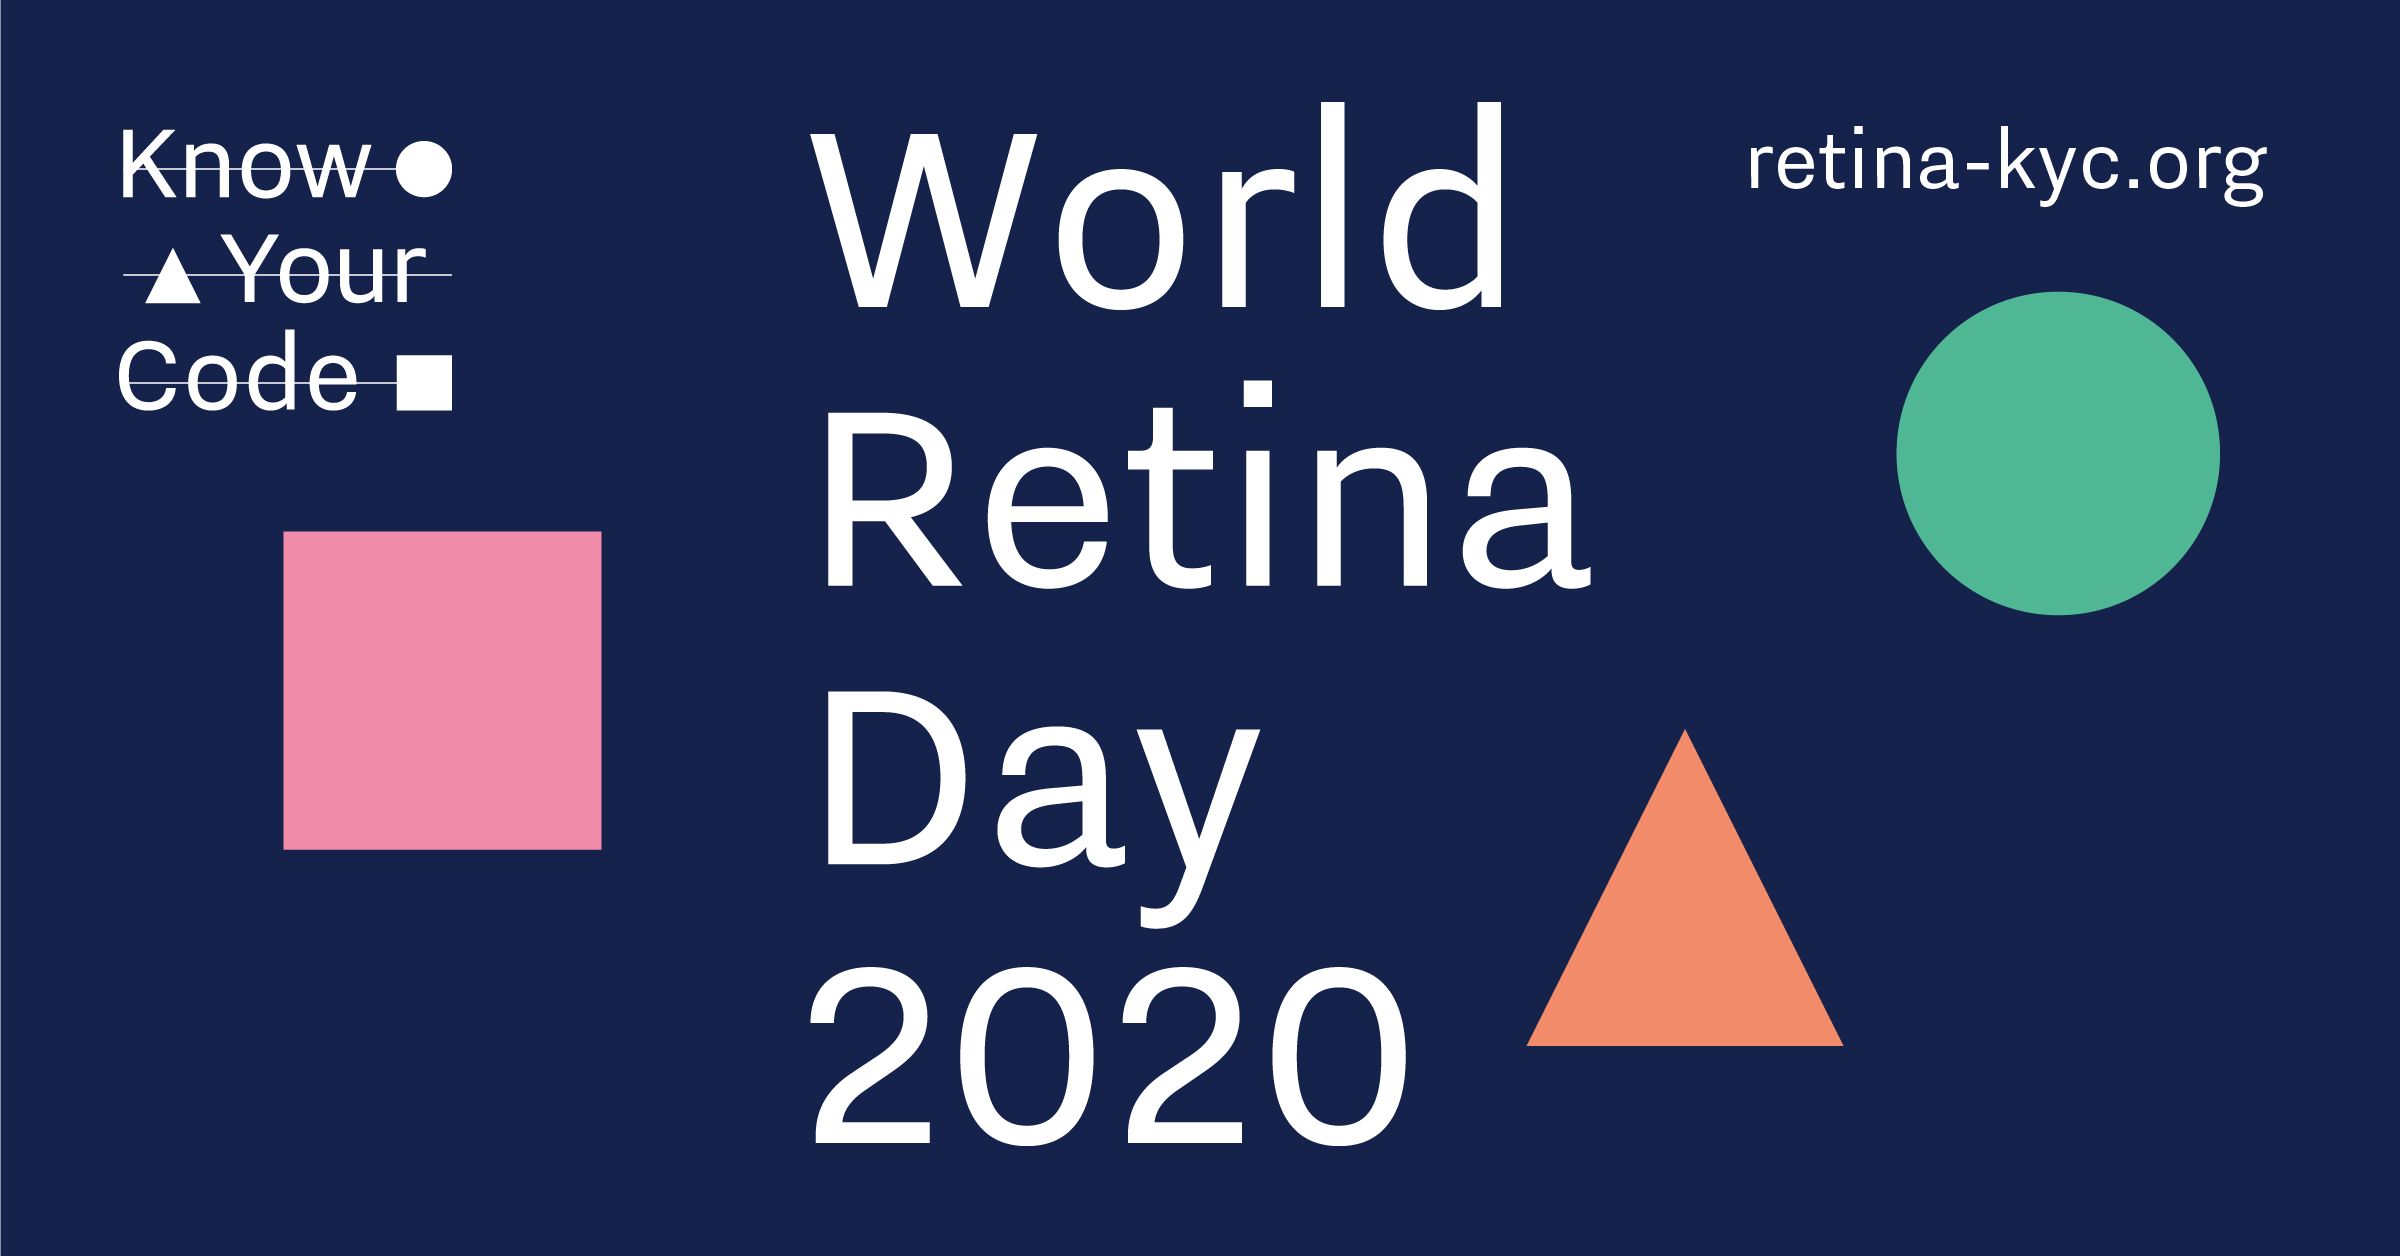 Flyer: World Retina Day 2020, Know Your Code launch